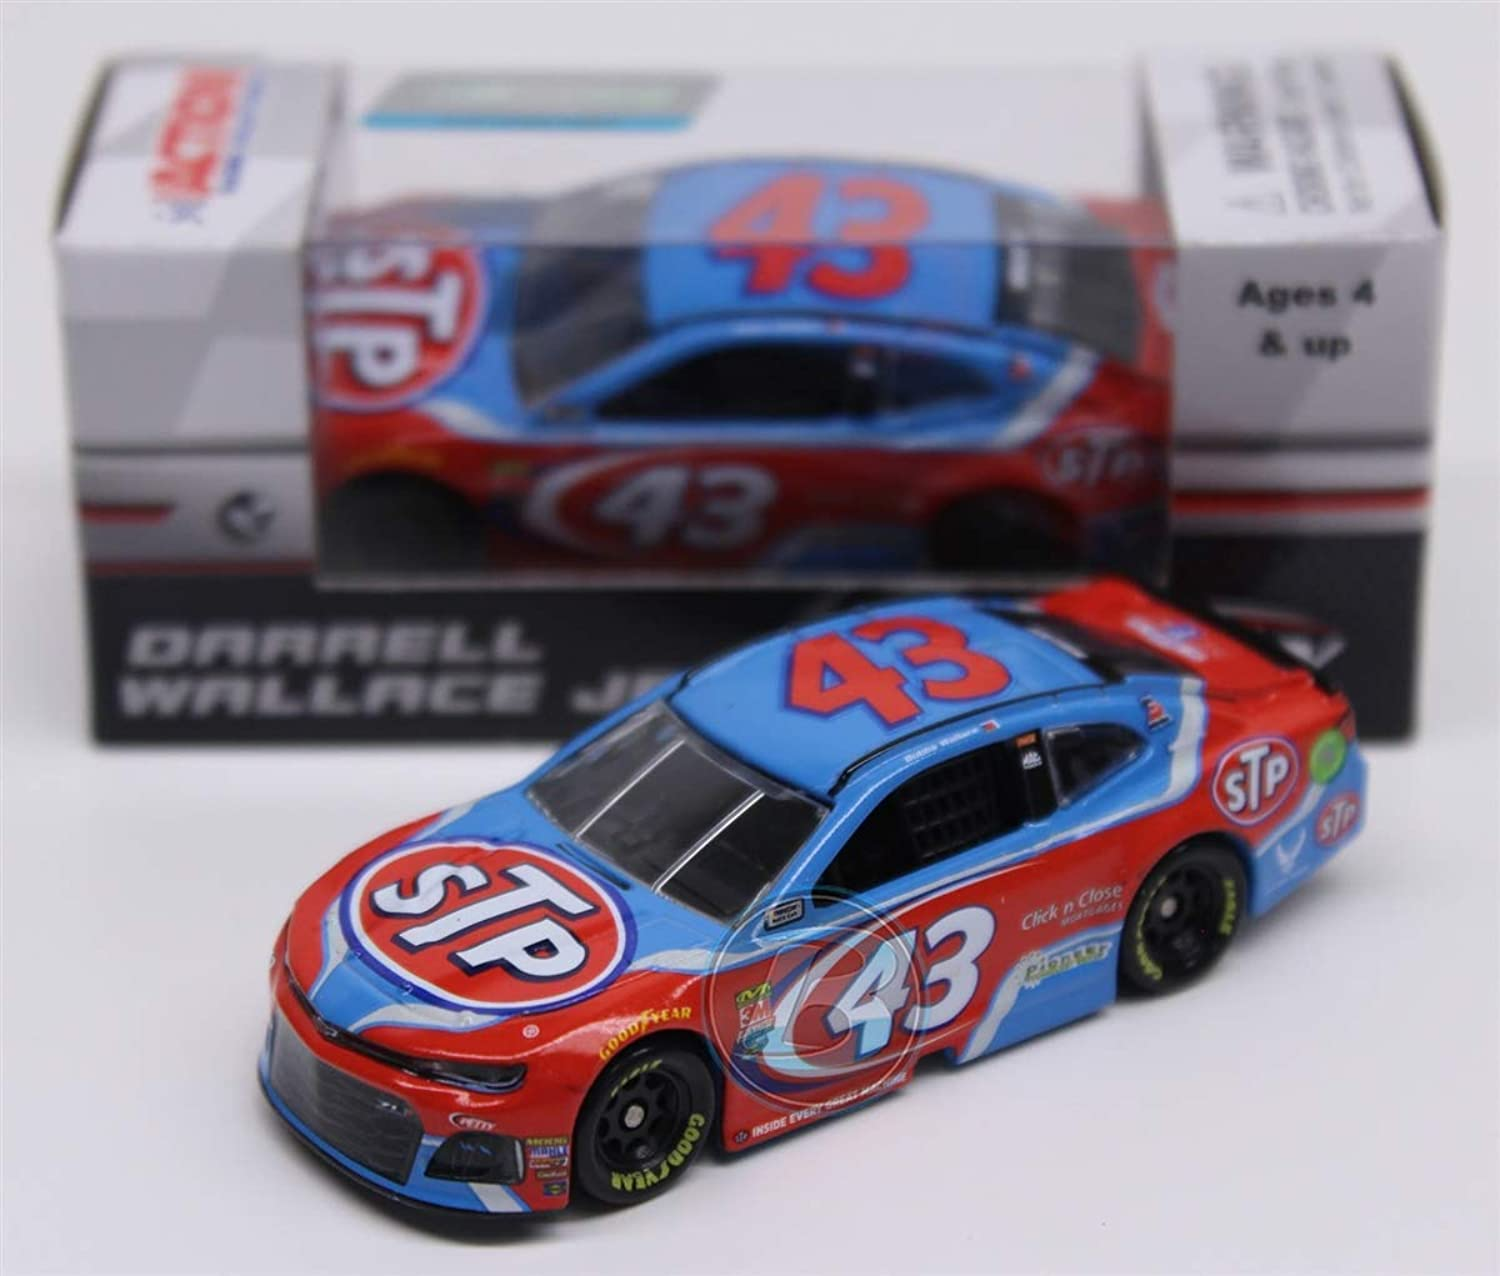 Lionel Racing Bubba Wallace 2018 STP 1 64